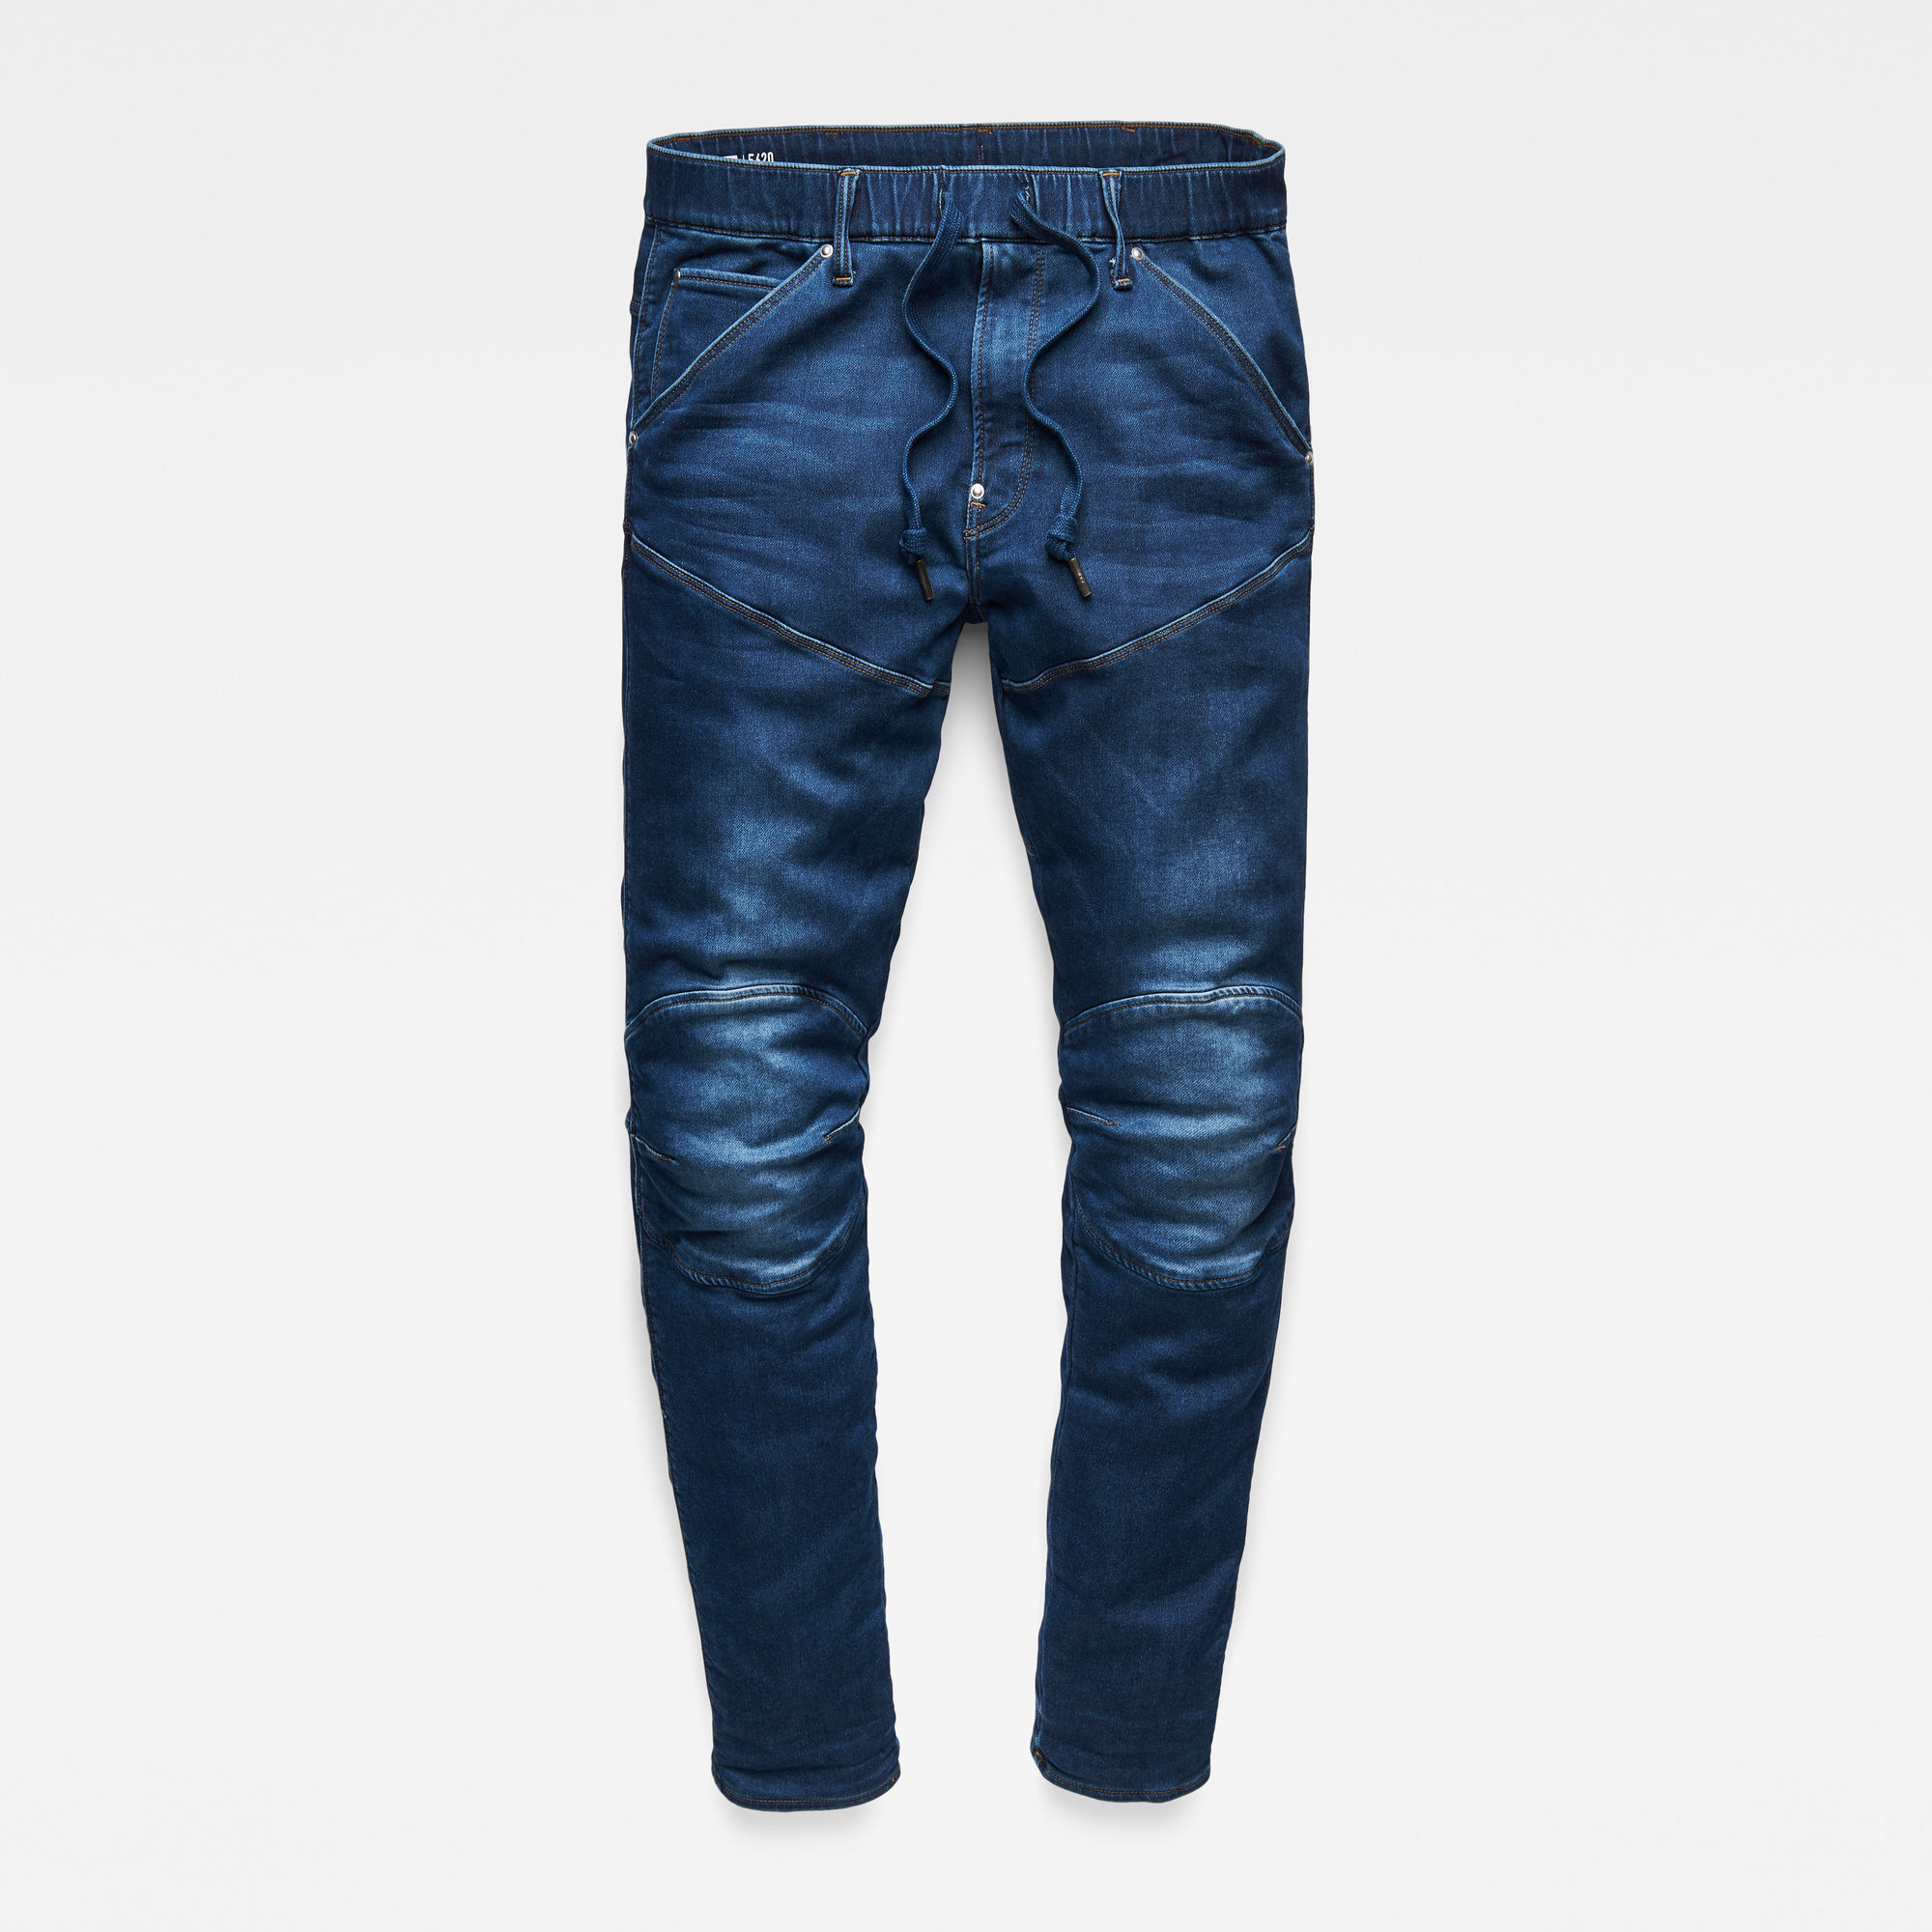 5620-R 3D Sport Tapered Pants